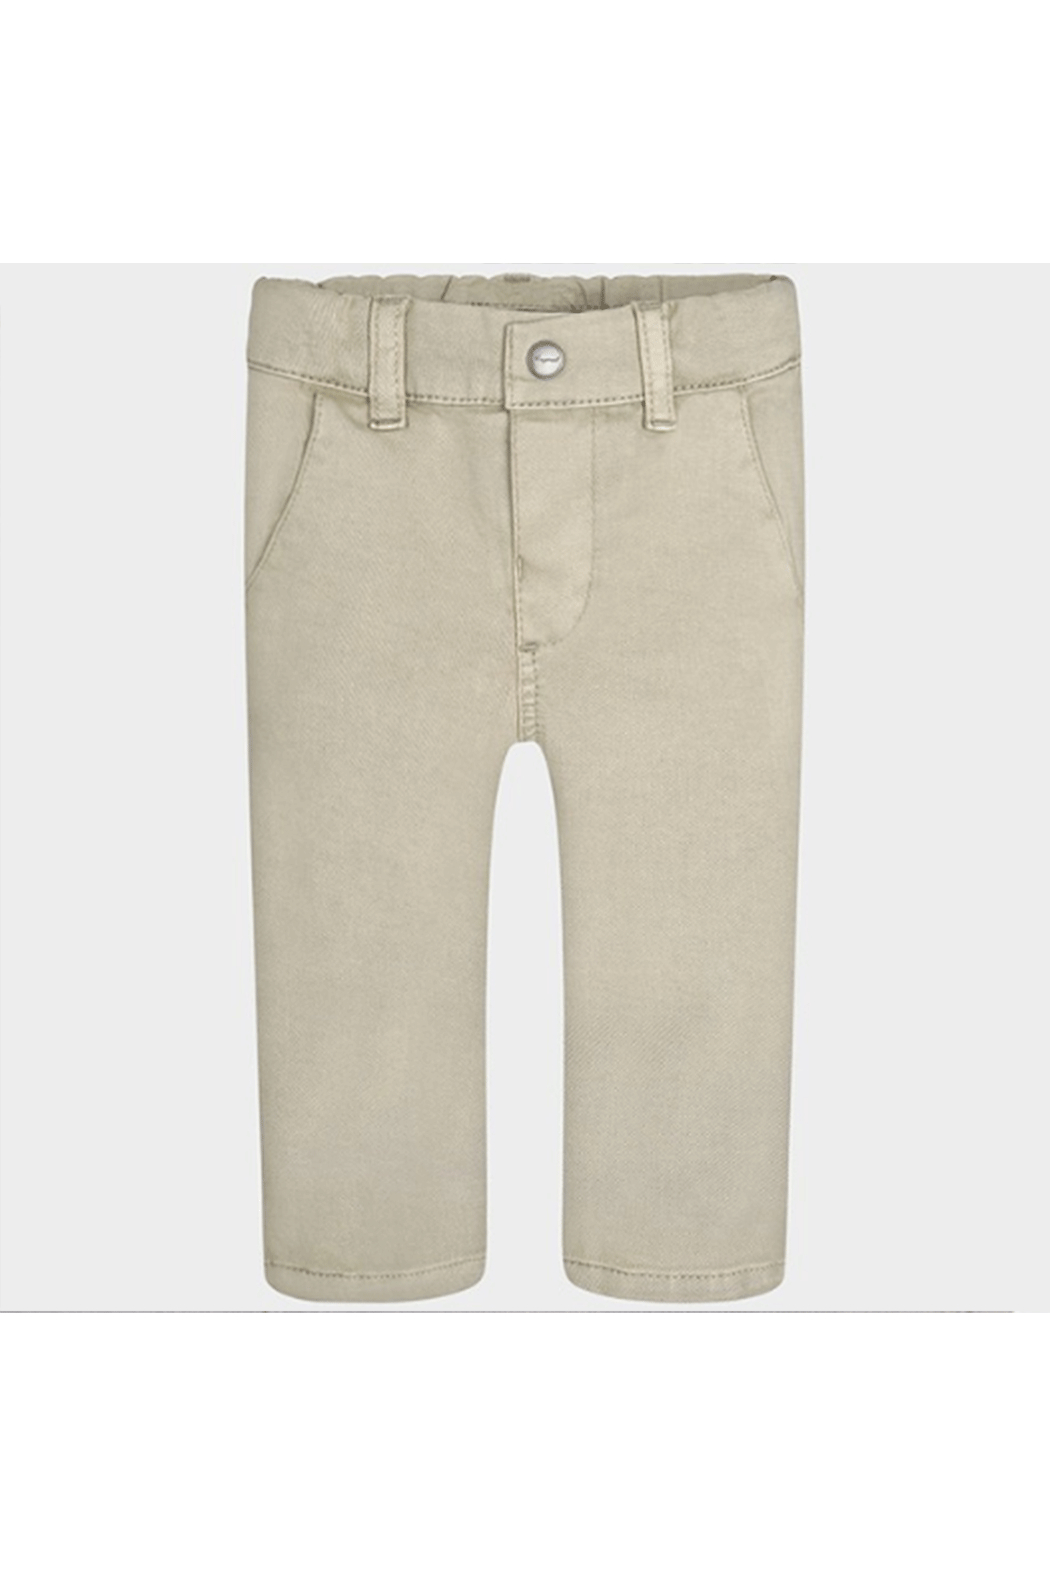 Mayoral Stone Trousers - Main Image